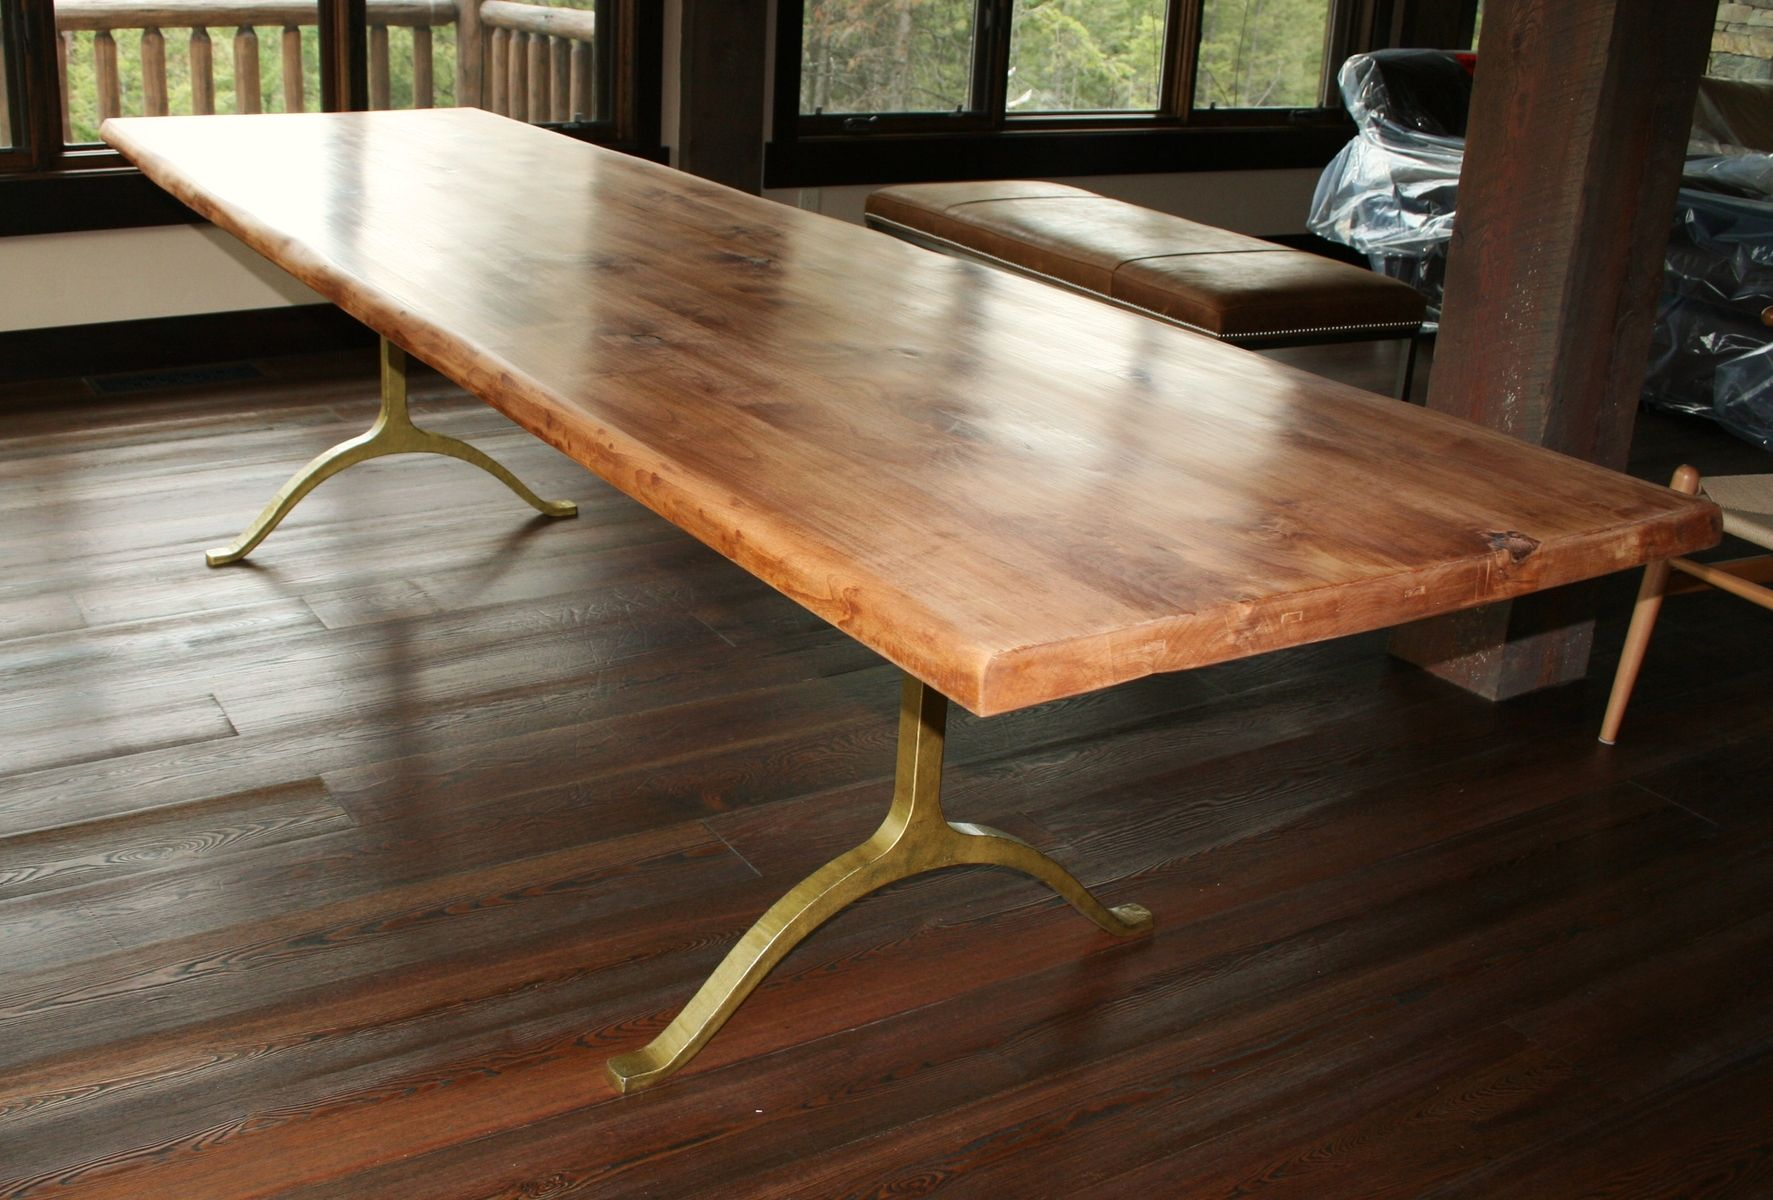 Handmade Rustic Dining Table By Echo Peak Design